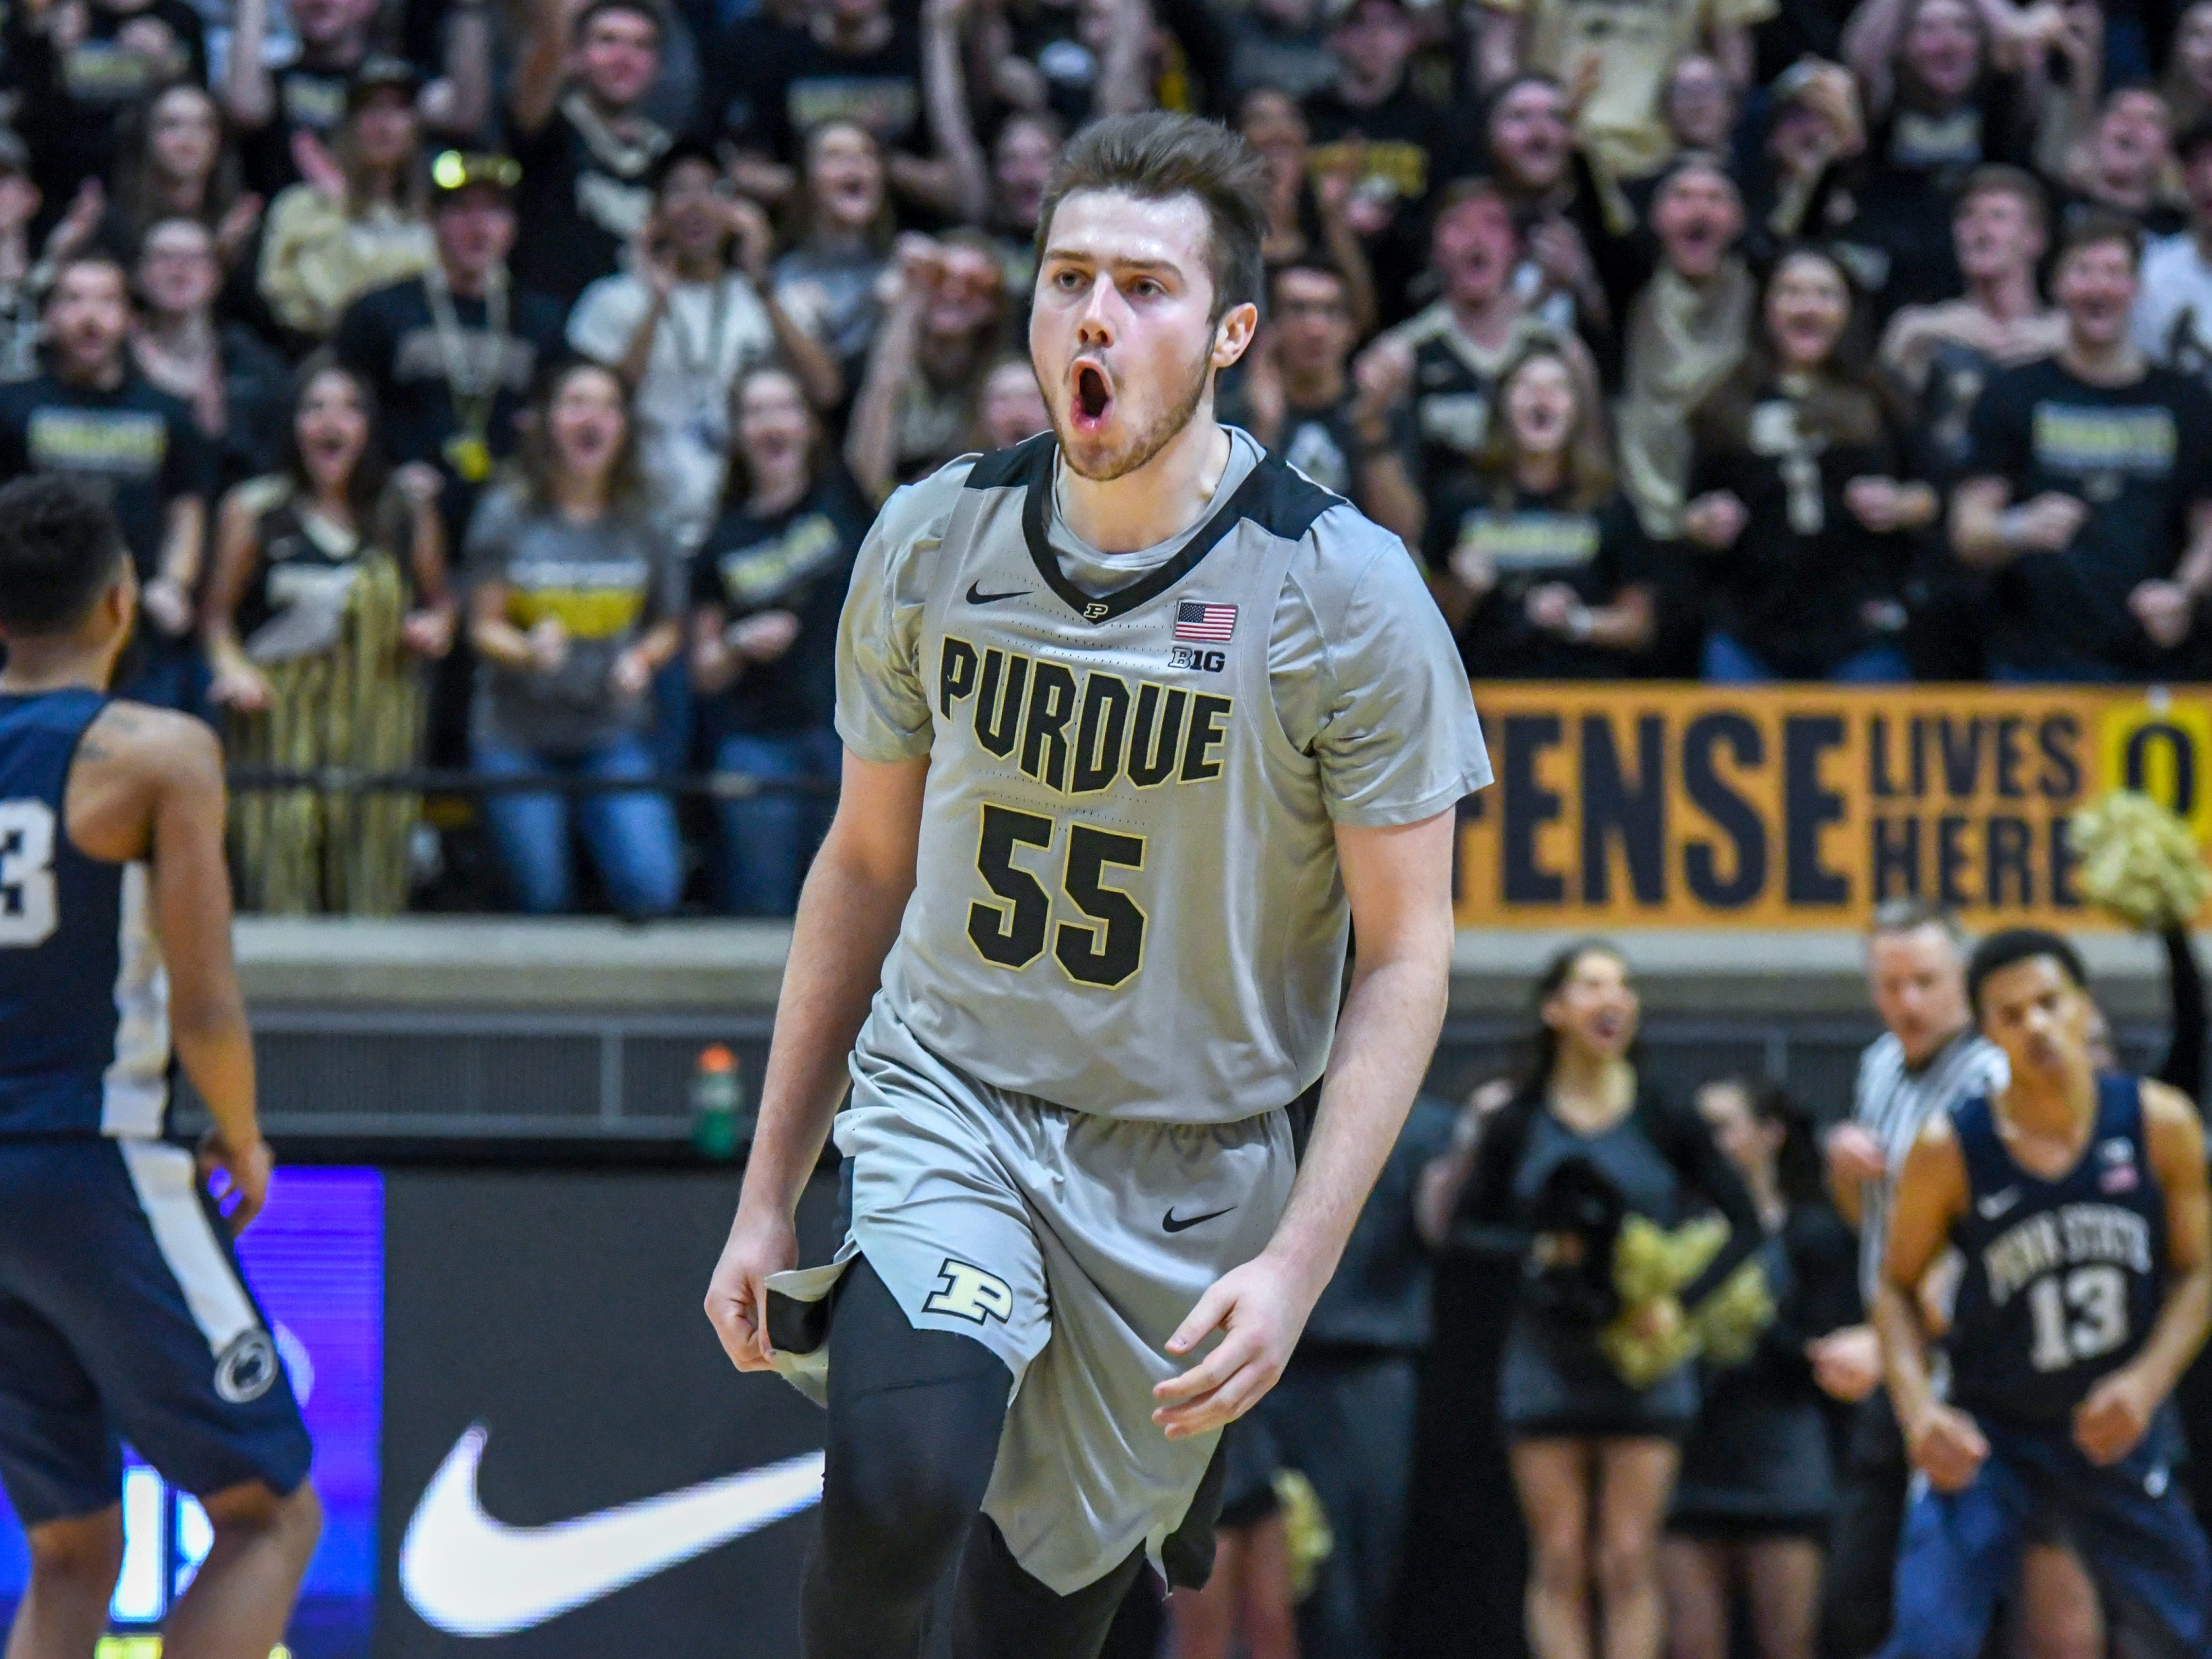 Purdue's Sasha Stefanovic celebrates hitting a basket in the first half at Purdue on Saturday February 16, 2019.